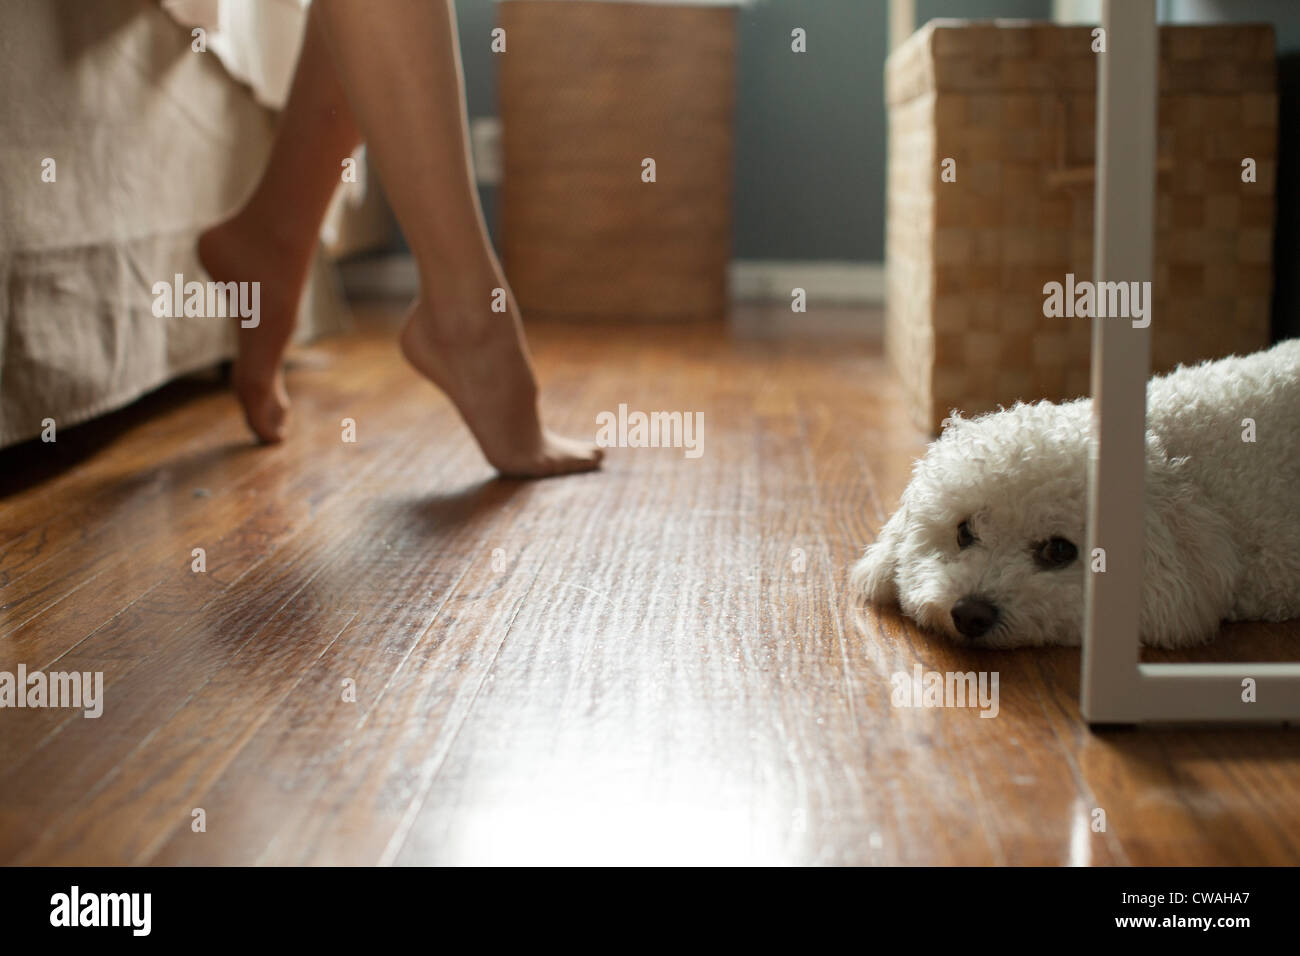 Poodle lying on floor of room, feet of woman in background - Stock Image